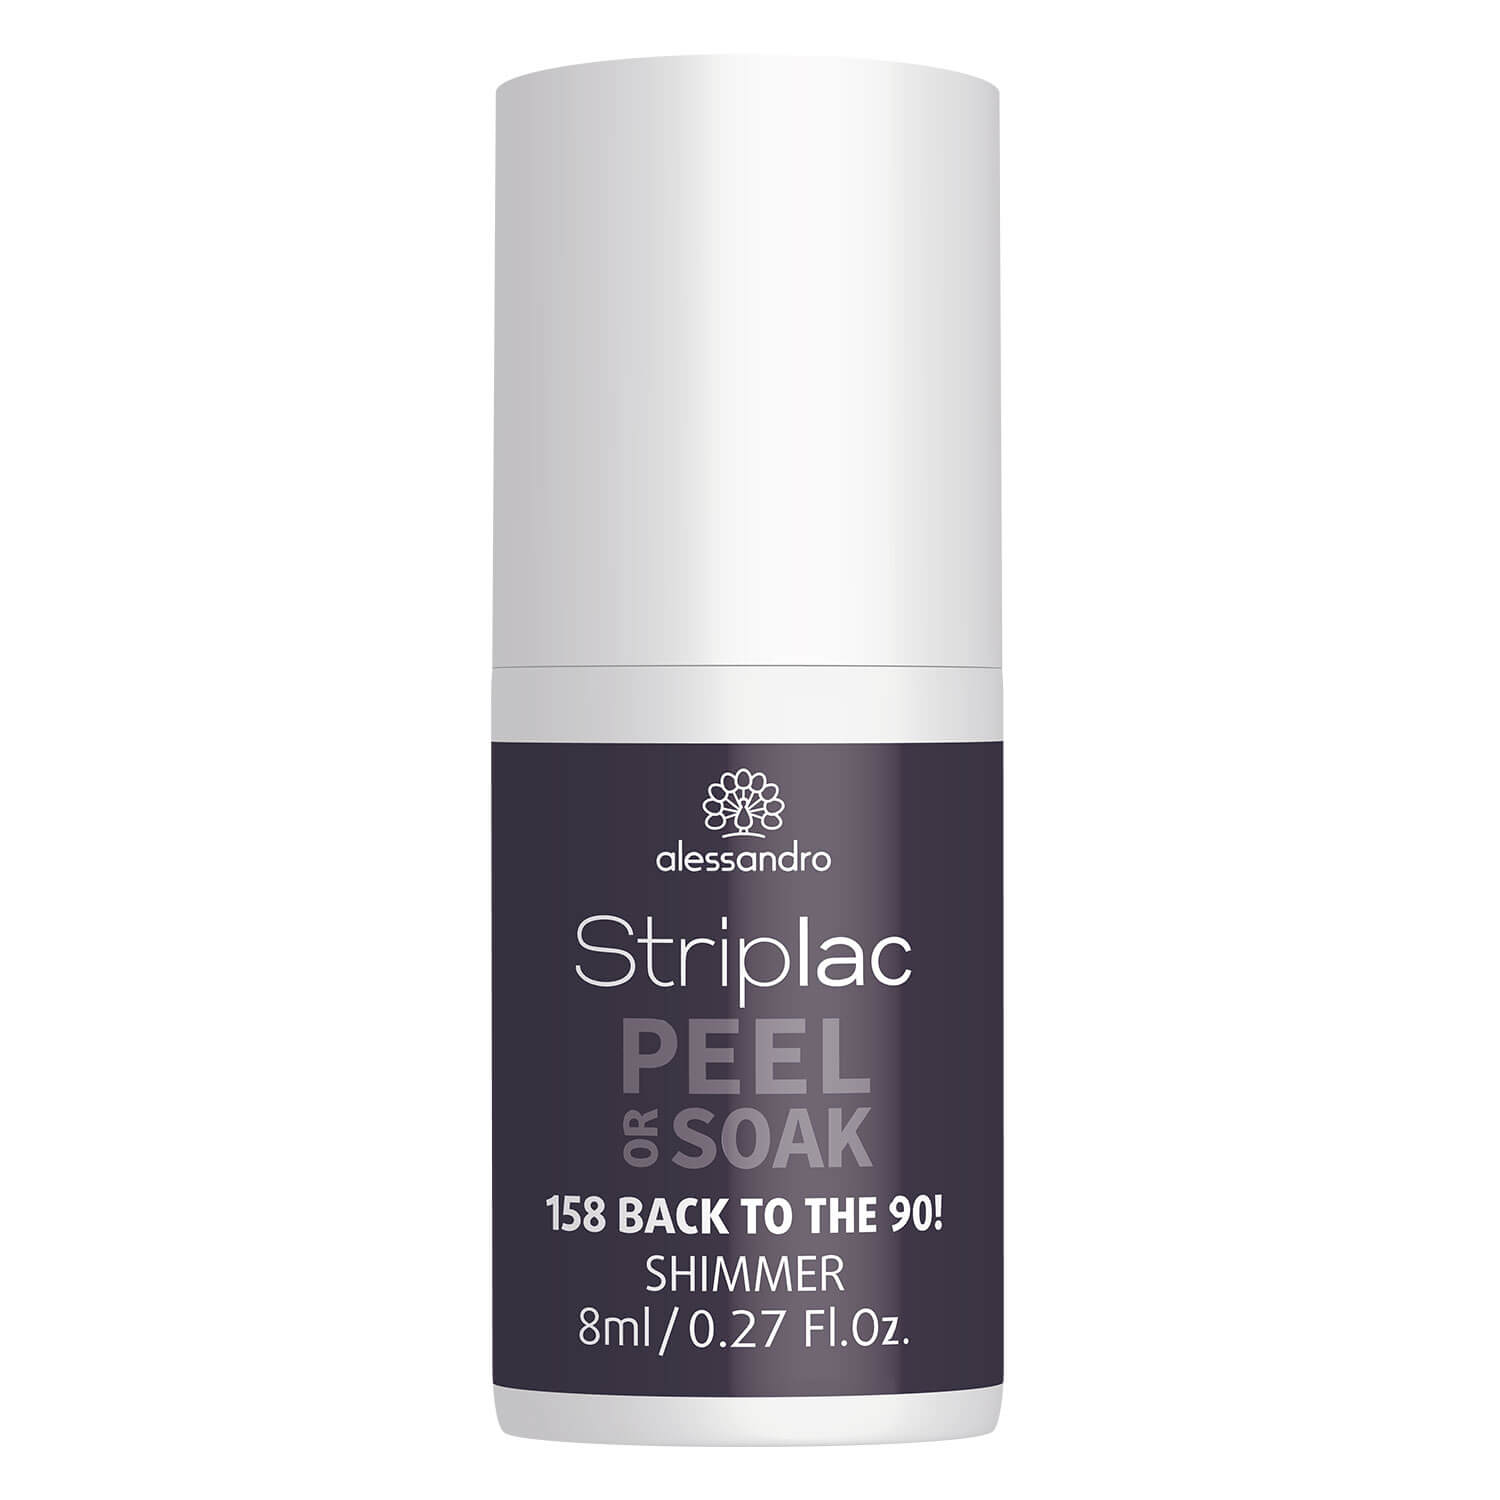 Striplac Peel or Soak - Back to the 90s!